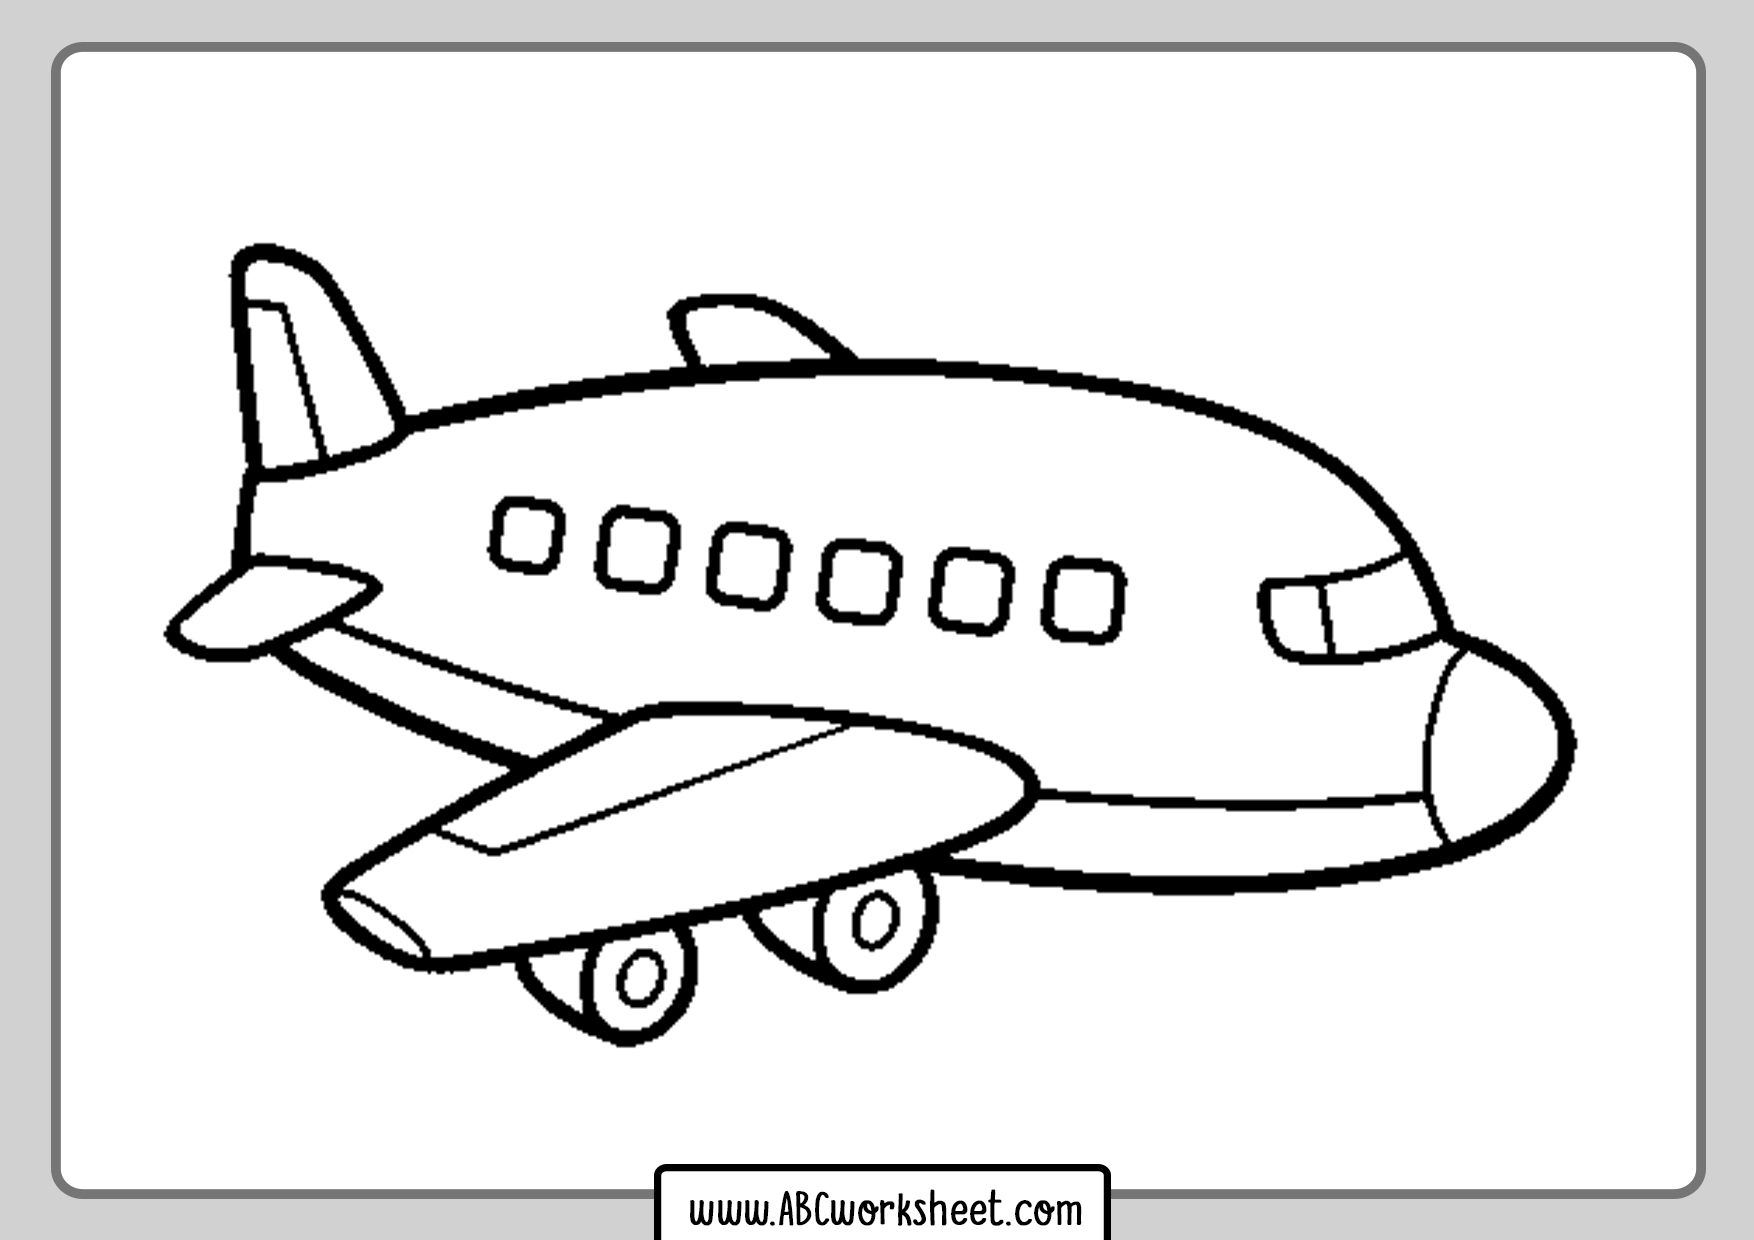 Airplane Coloring Page For Kids